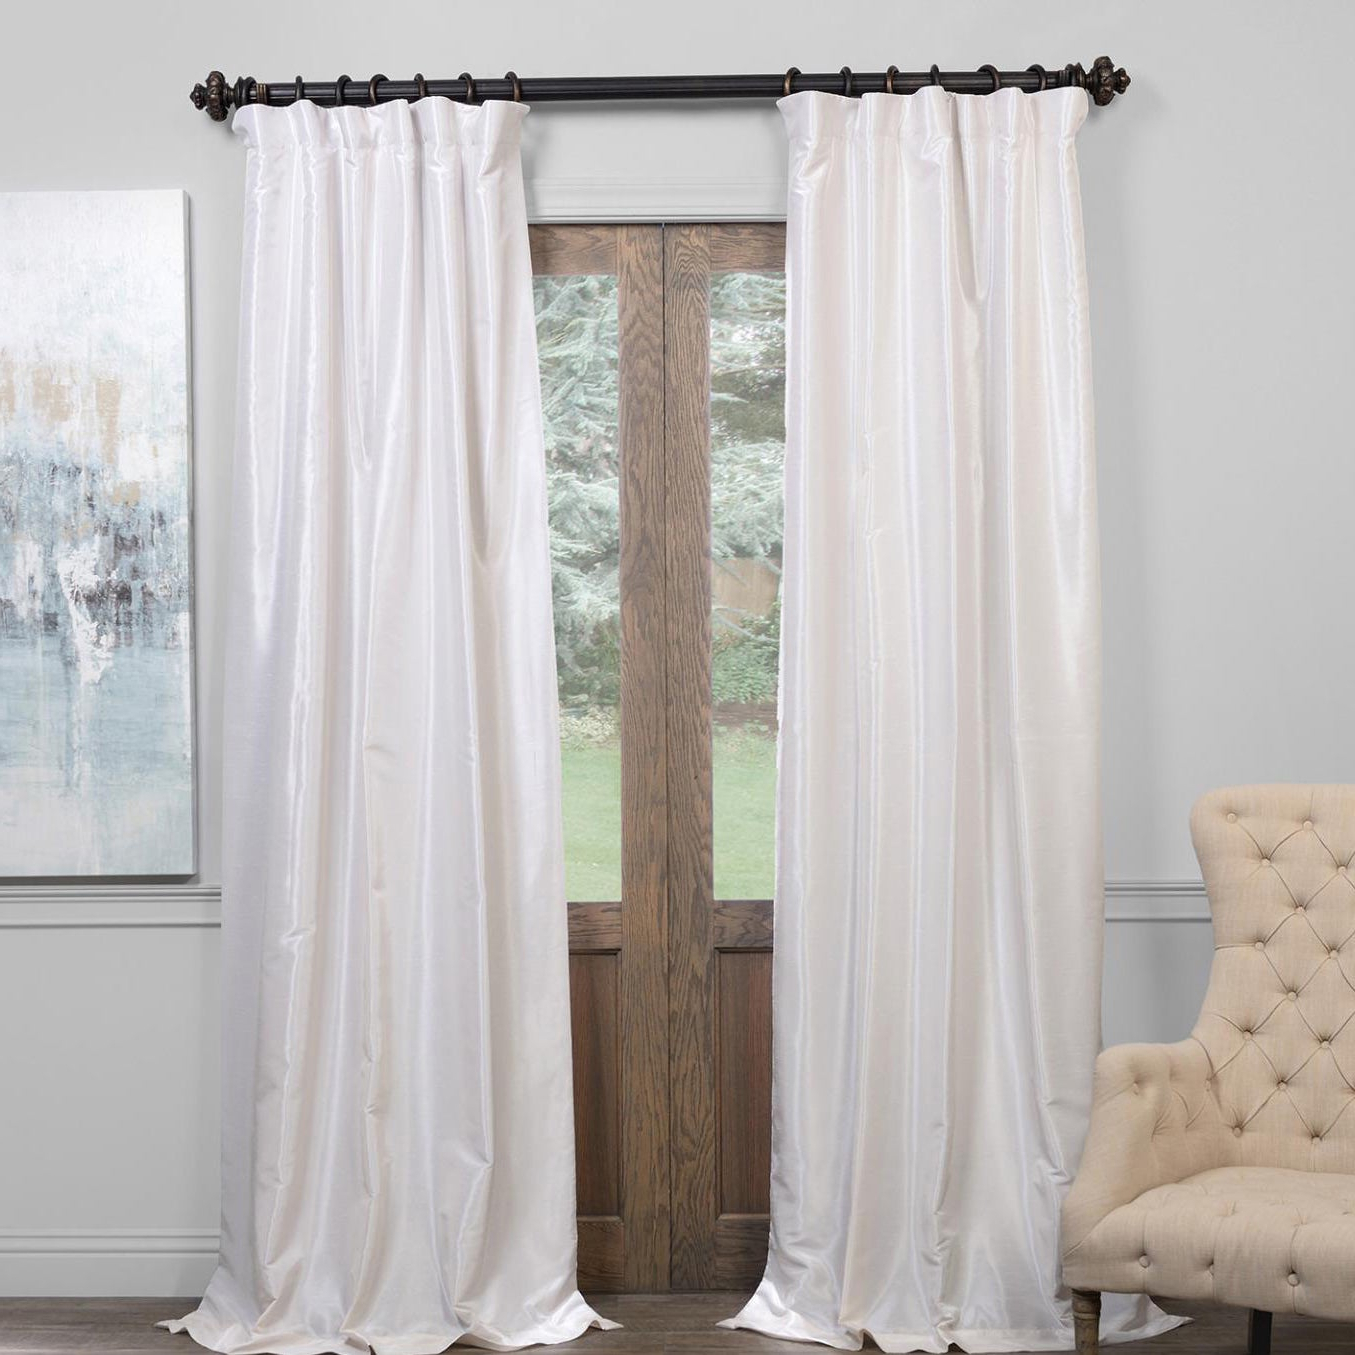 "2021 Exclusive Fabrics True Blackout Vintage Textured Faux Dupioni Silk Curtain Panel In 108""l In Off White (as Is) Regarding Vintage Faux Textured Dupioni Silk Curtain Panels (View 15 of 20)"